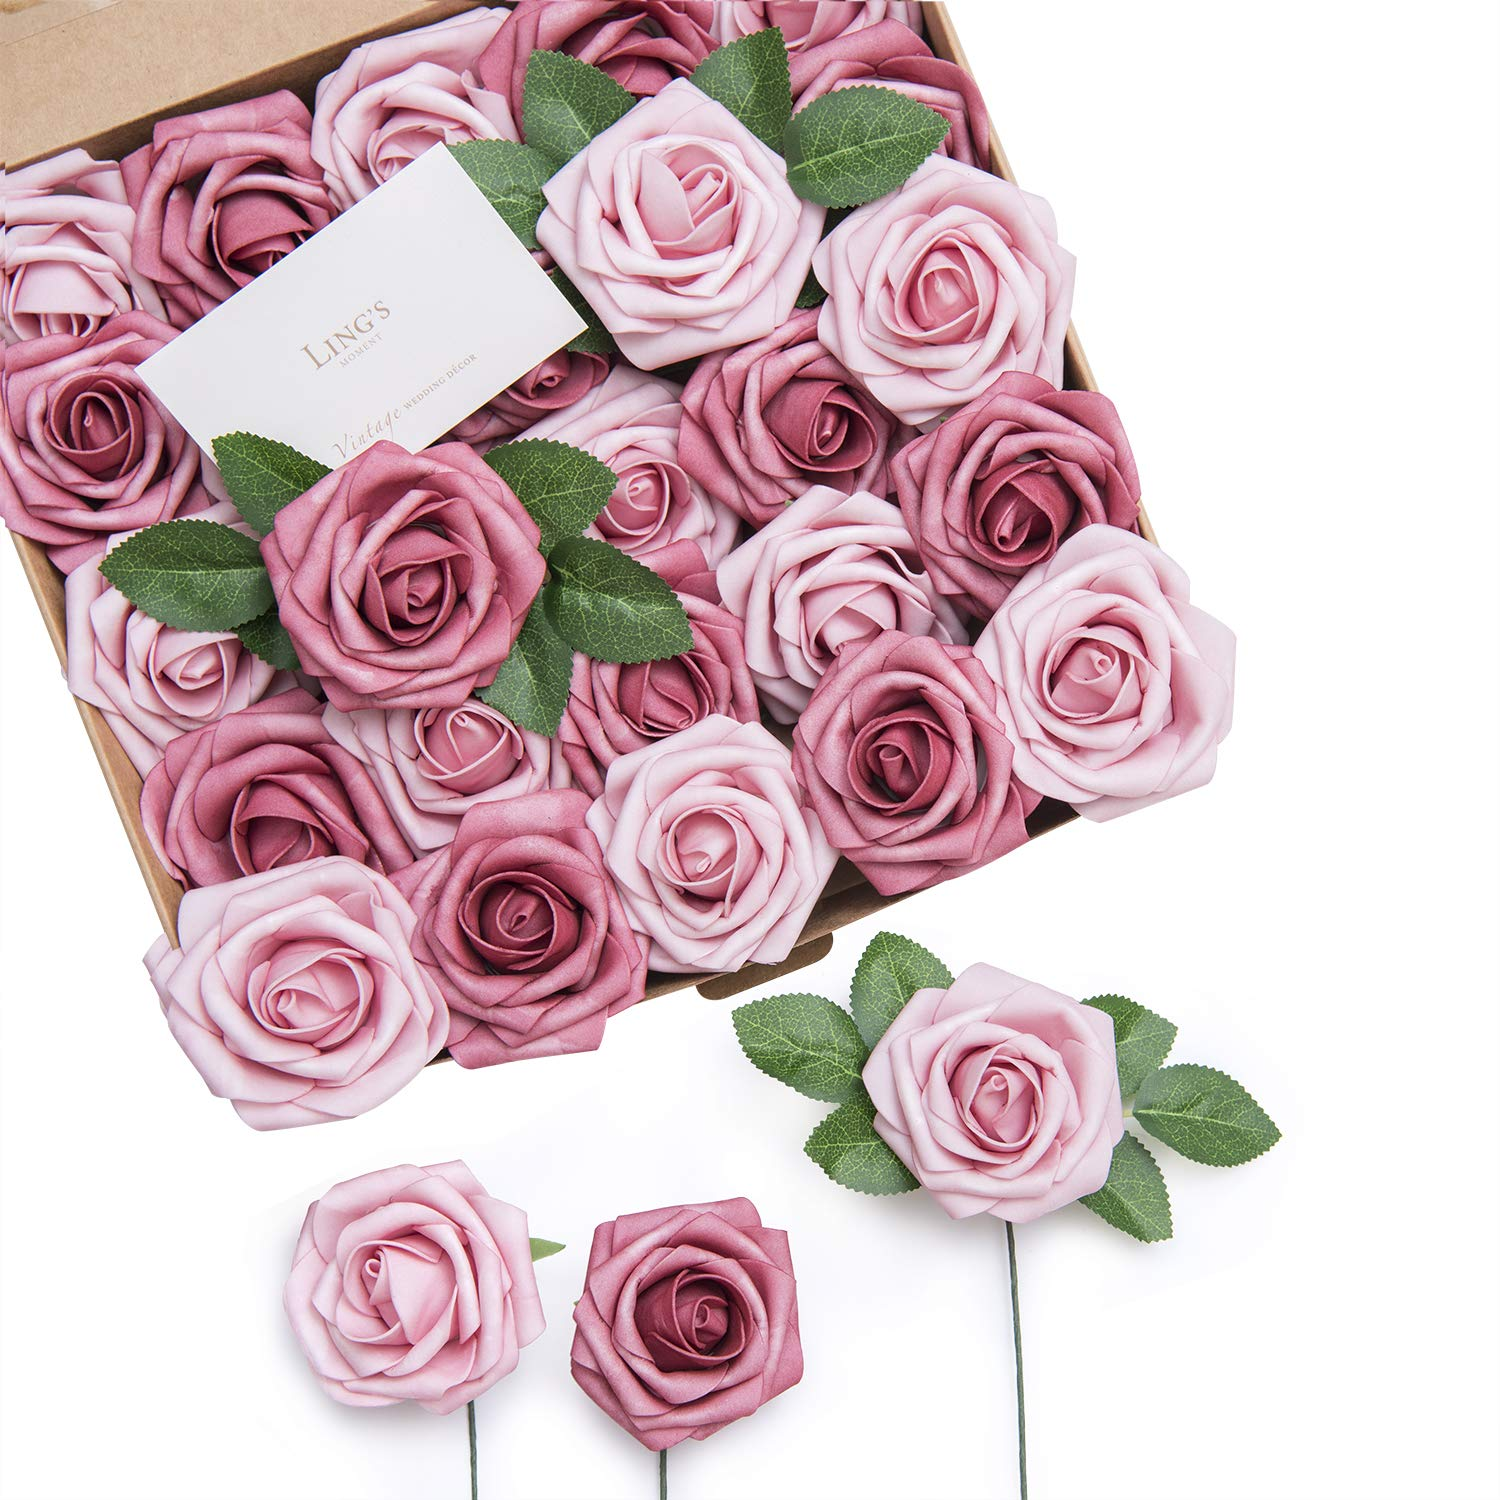 Buy Ling S Moment Roses Artificial Flowers 25pcs Dual Palette Blushing Pressed Rose With Stem For Diy Wedding Flower Arrangements Centerpieces Bouquets Party Decorations Online At Low Prices In India Amazon In